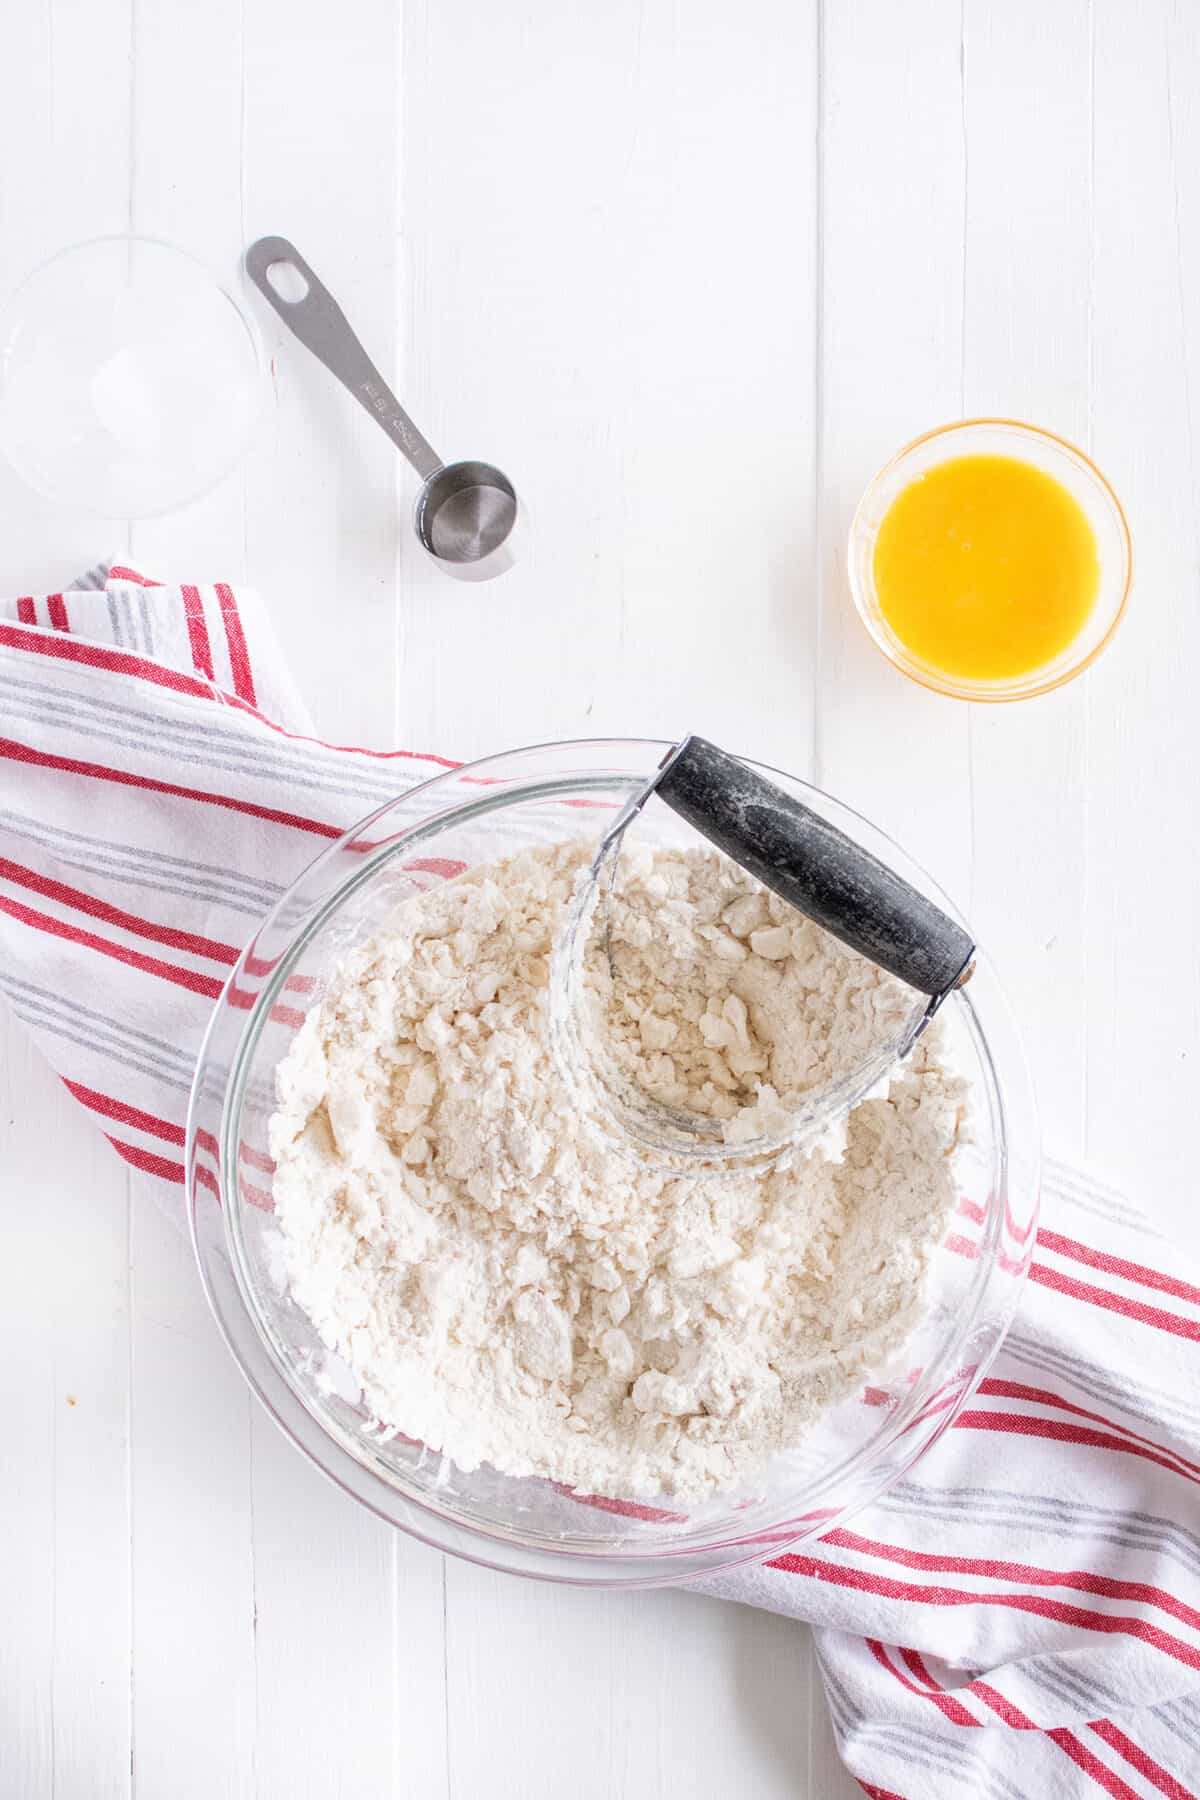 cutting the lard into the flour with a pastry blender